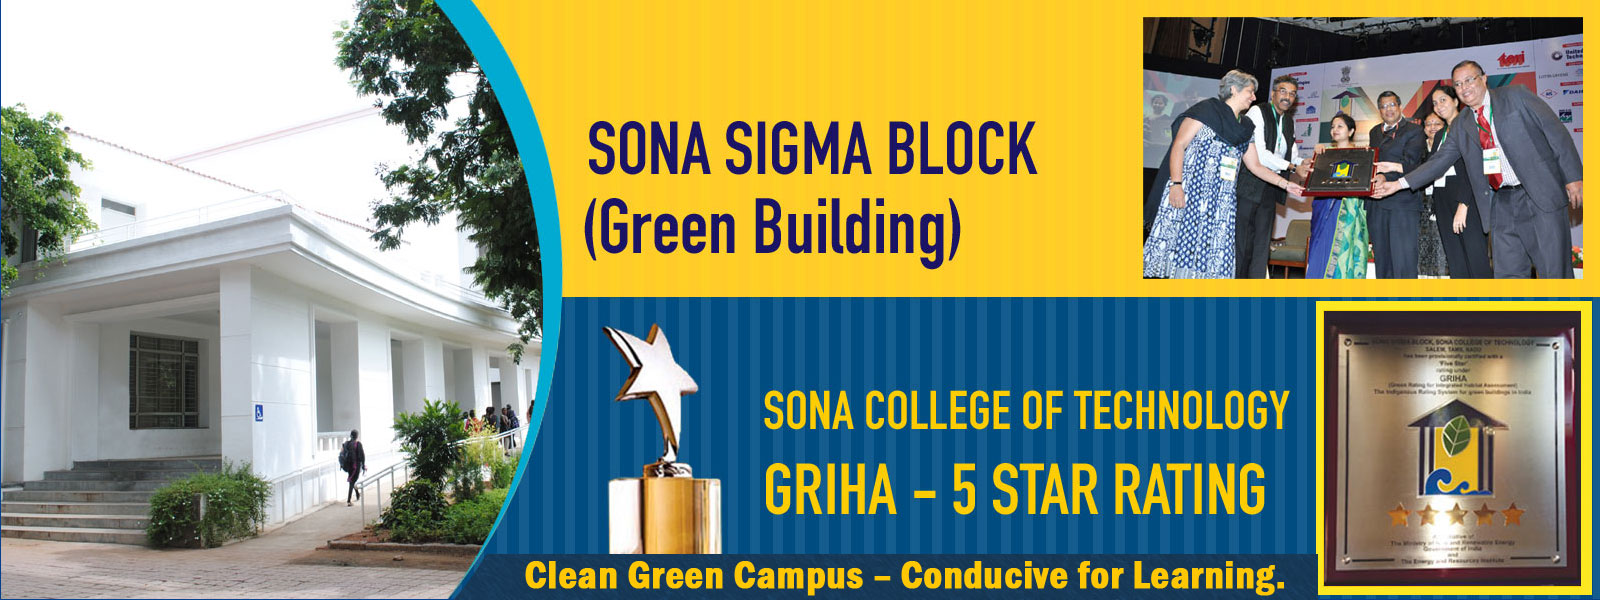 Griha 5 Star rated green building by Ministry of Renewable Energy